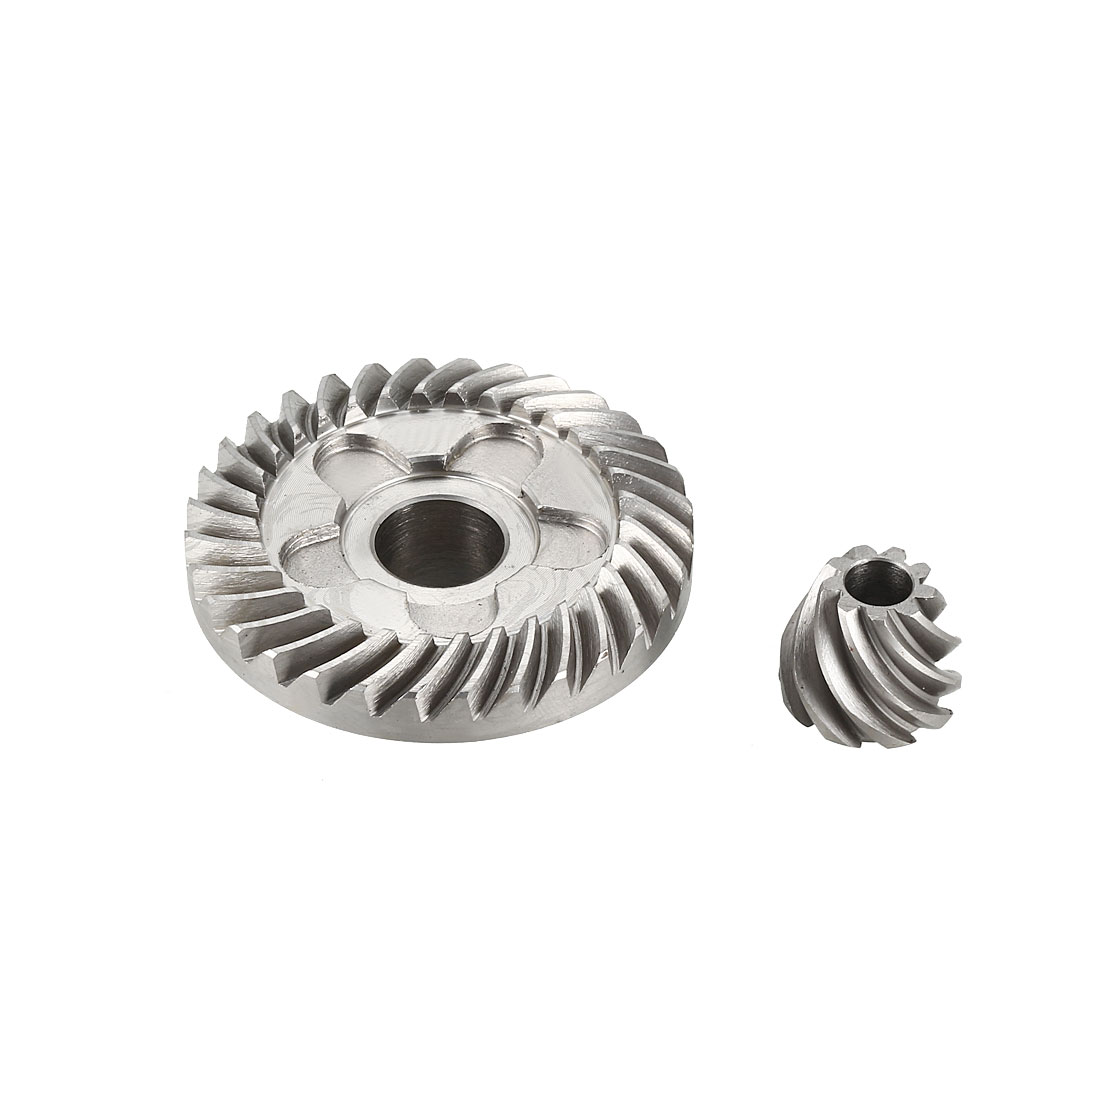 Angle Grinder Spiral Bevel Gear Set for Bosch GWS 6-100